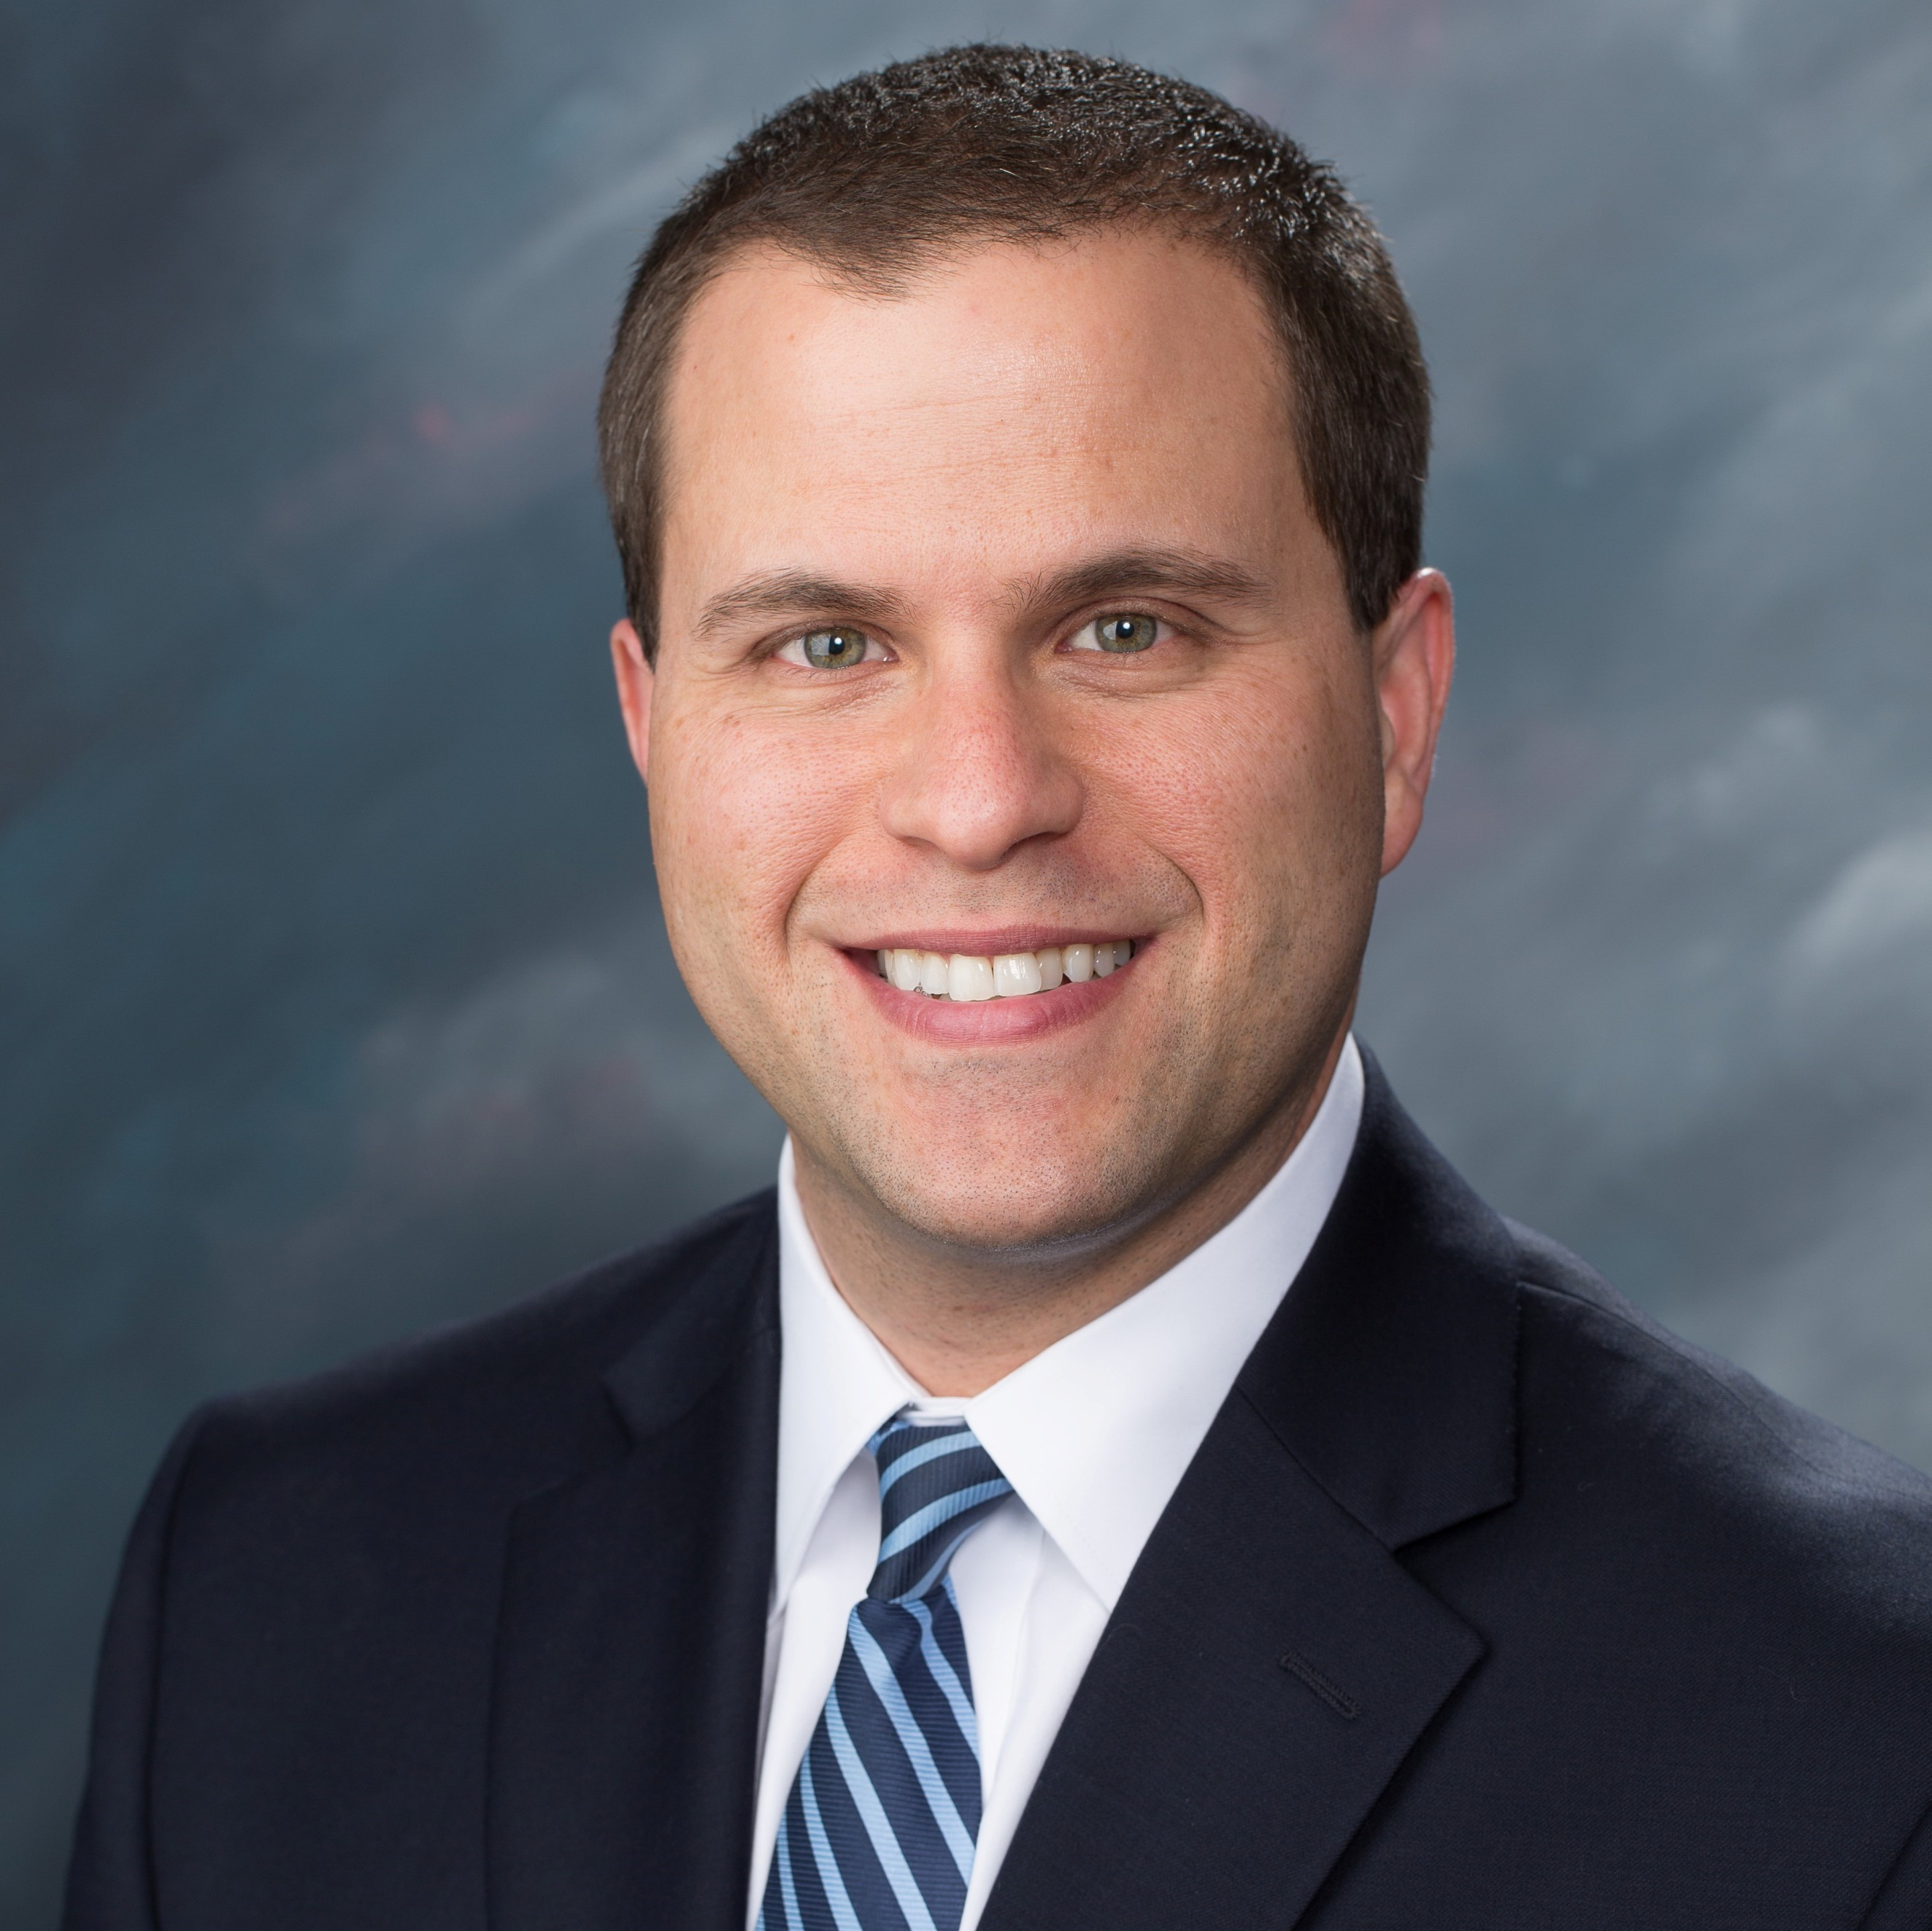 thomas-russo-jr-currently-serves-as-town-manager-in-newton-nj-with-over-eleven-years-of-dedicated-service-to-the-county-seat-of-sussex-county-nj-ep2306_thumbnail.png